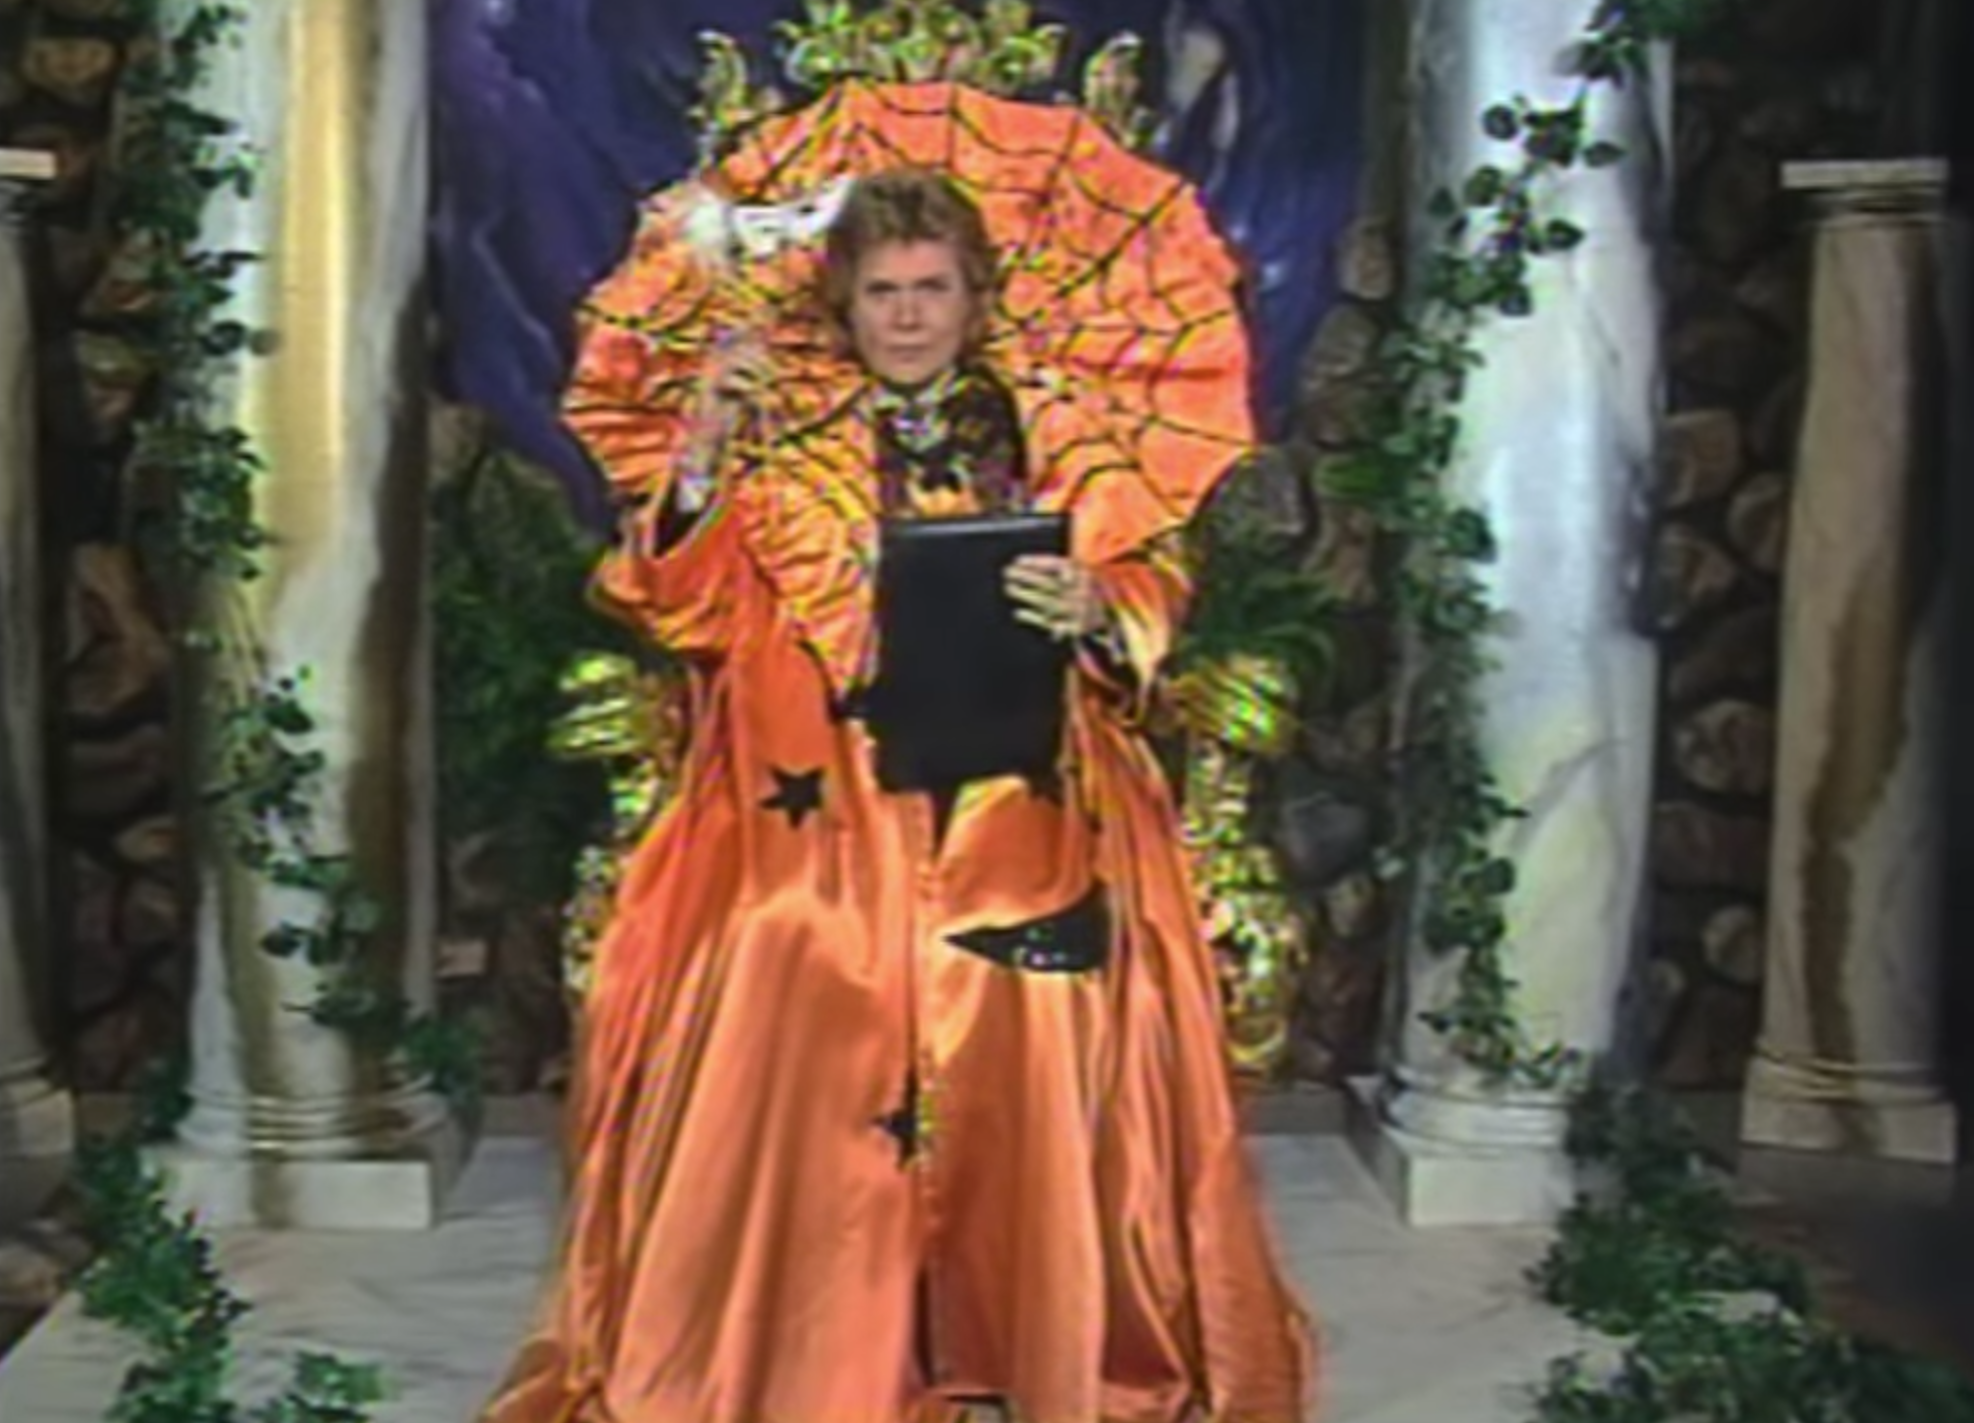 An old image from Walter Mercado's television program. Walter reads from a large book dressed in a huge orange cape decorated for Halloween. He looks like a large pumpkin.